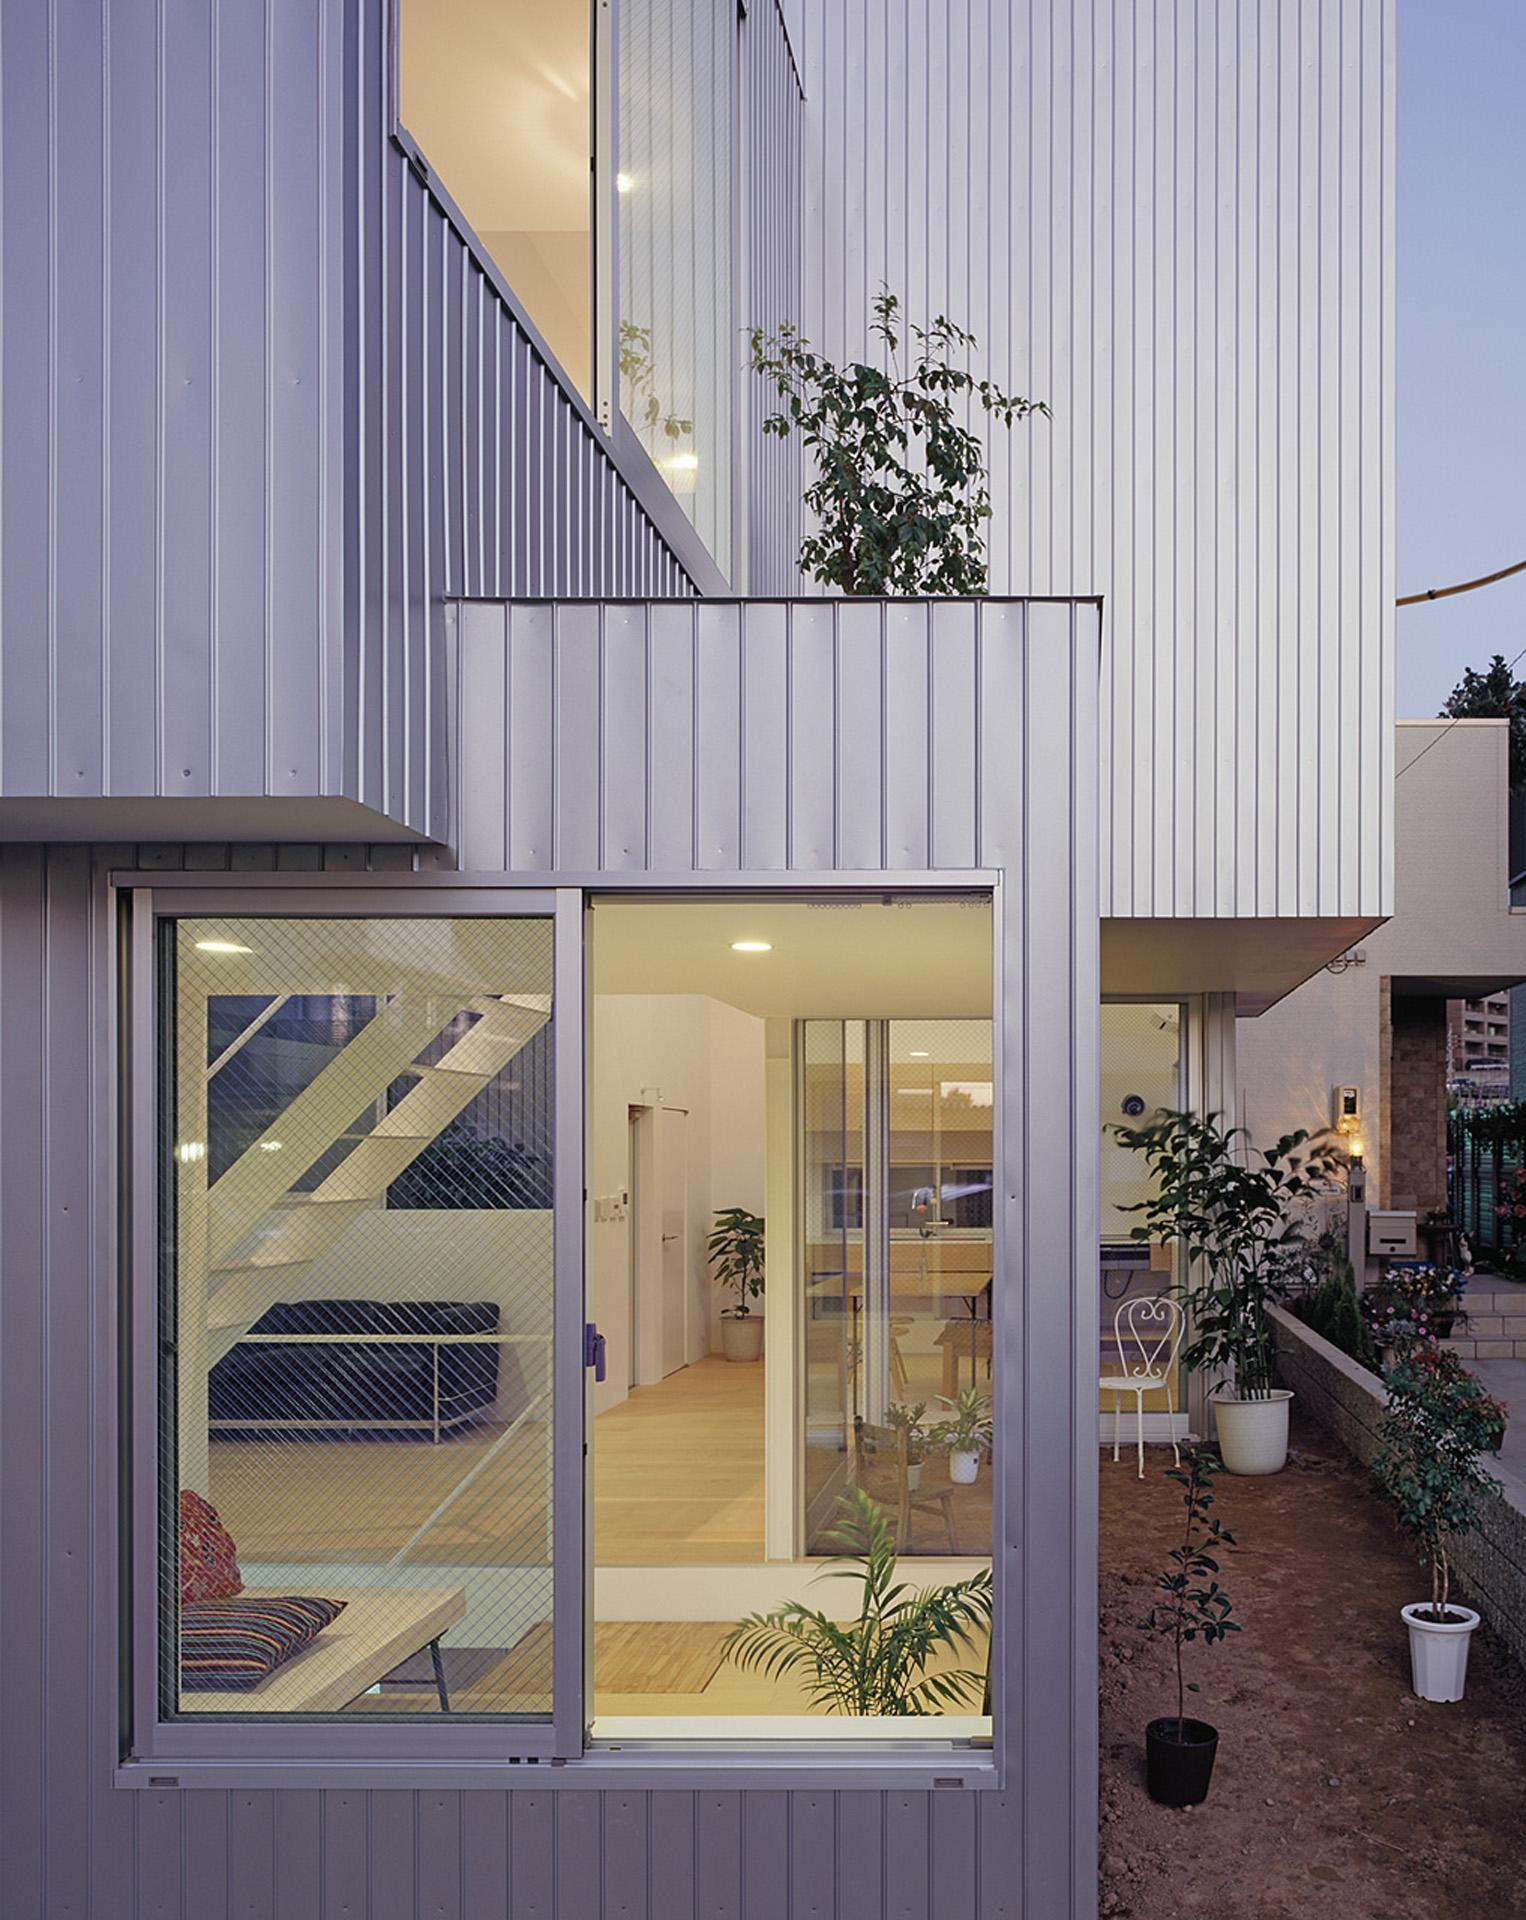 A Small House That Maximizes Family Time | Tetsuo Kondo Architects